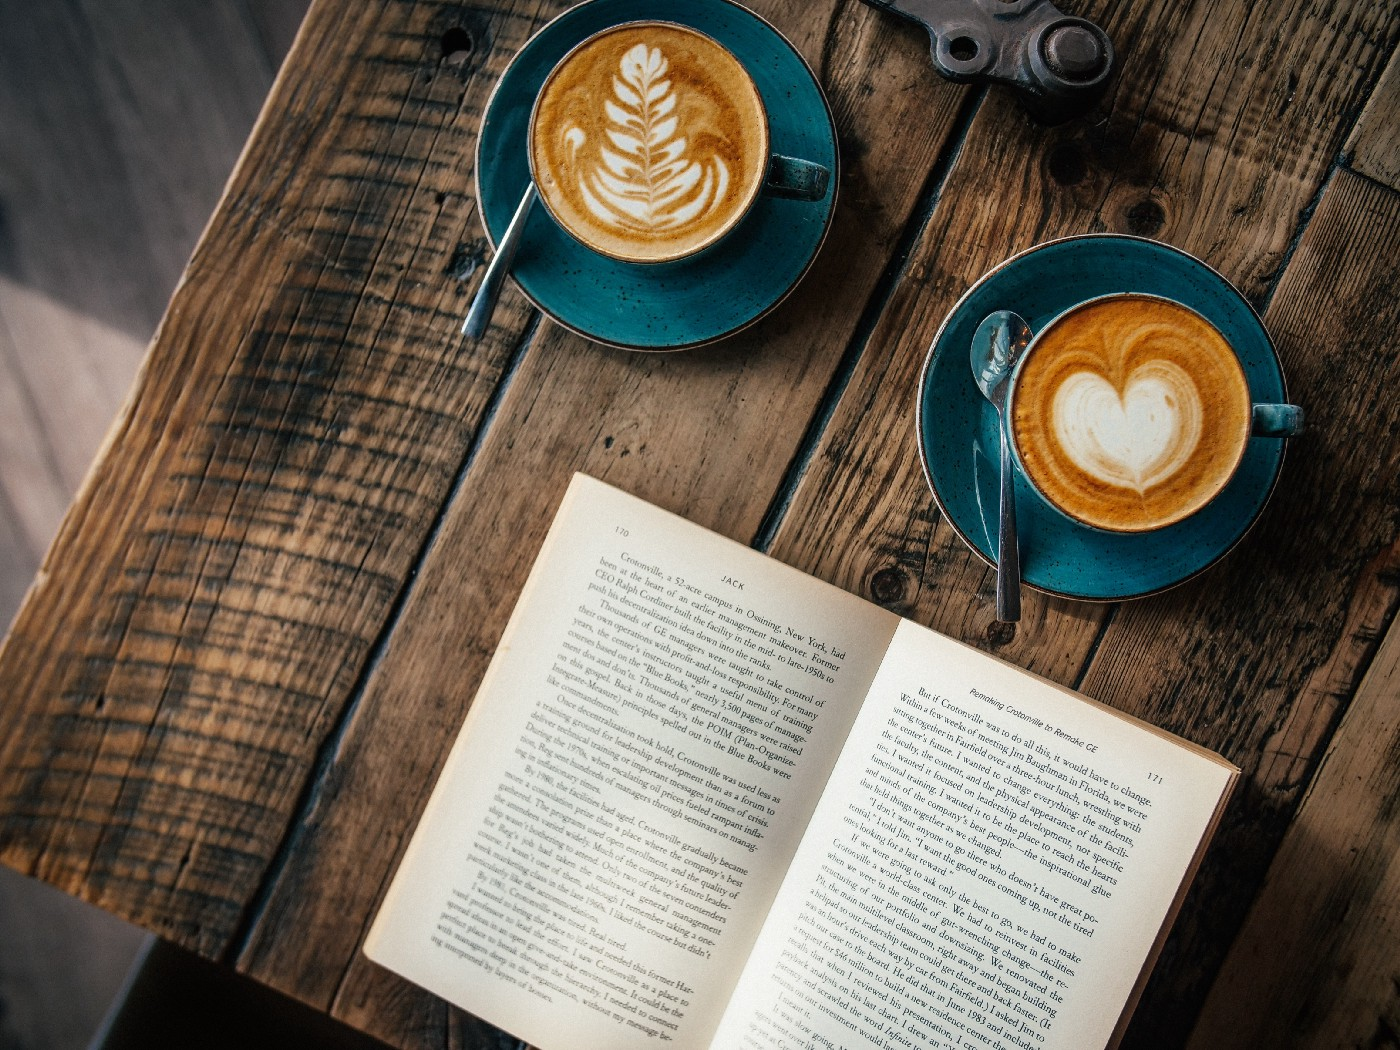 Two cups of coffee and an open book (at an angle).